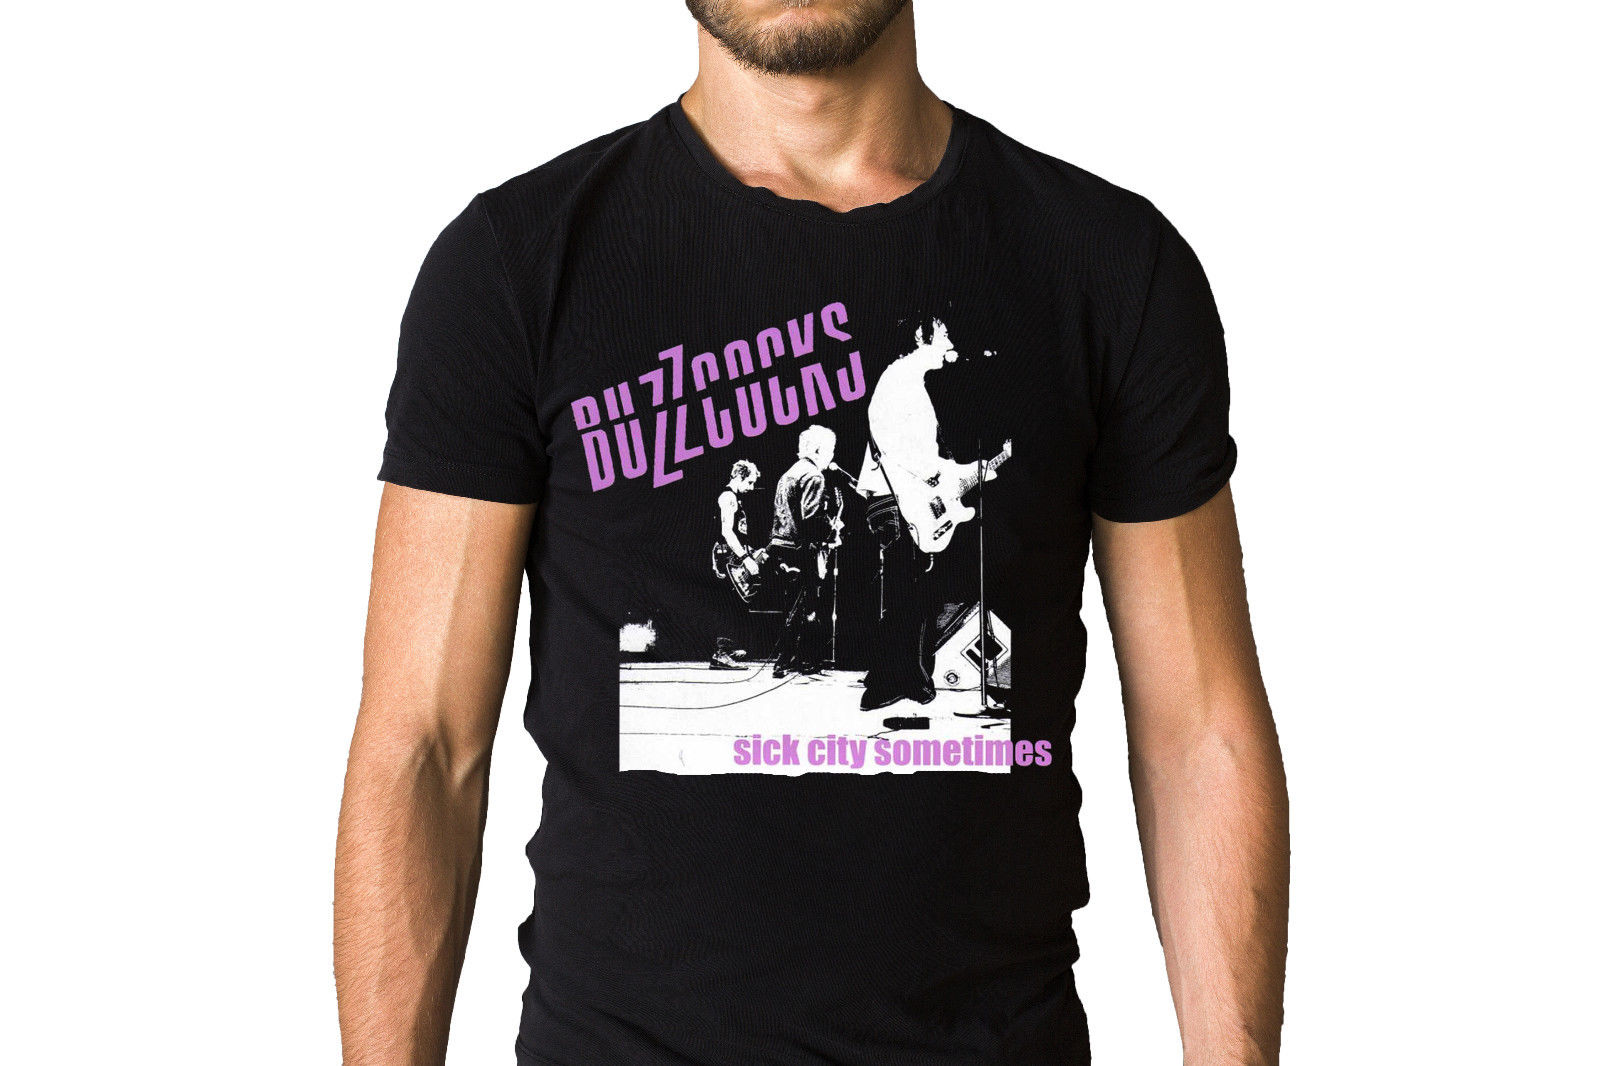 Buzzcocks Sick City Sometimes T-Shirt Adult 100% Cotton Customized Tees New T Shirts Funny Tops Tee Shirt